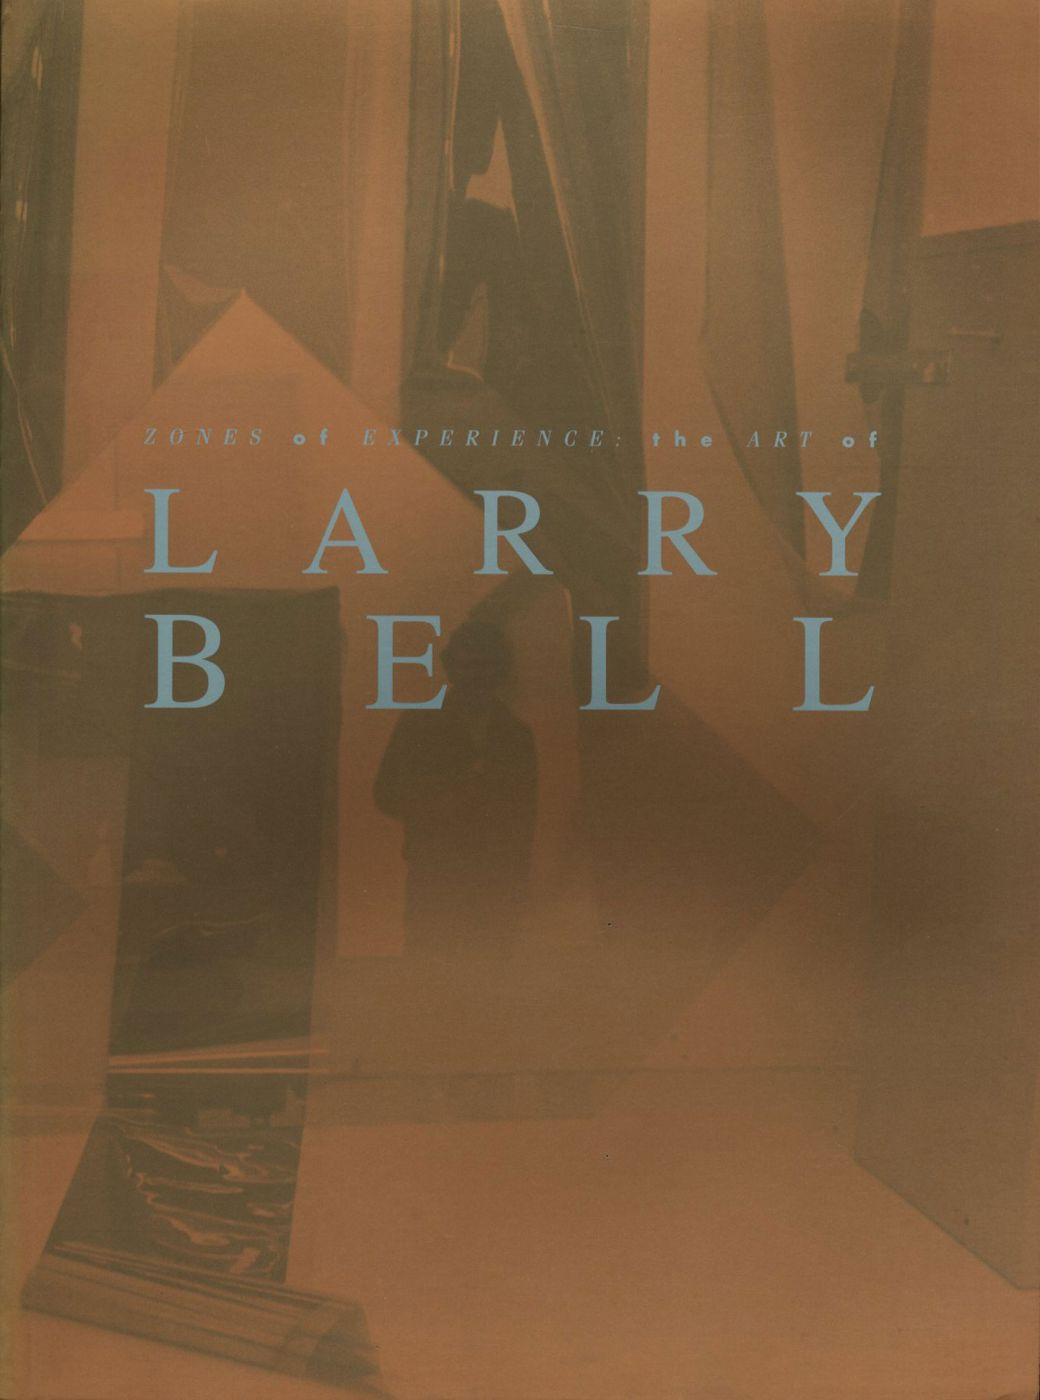 Zones of Experience: The Art of Larry Bell